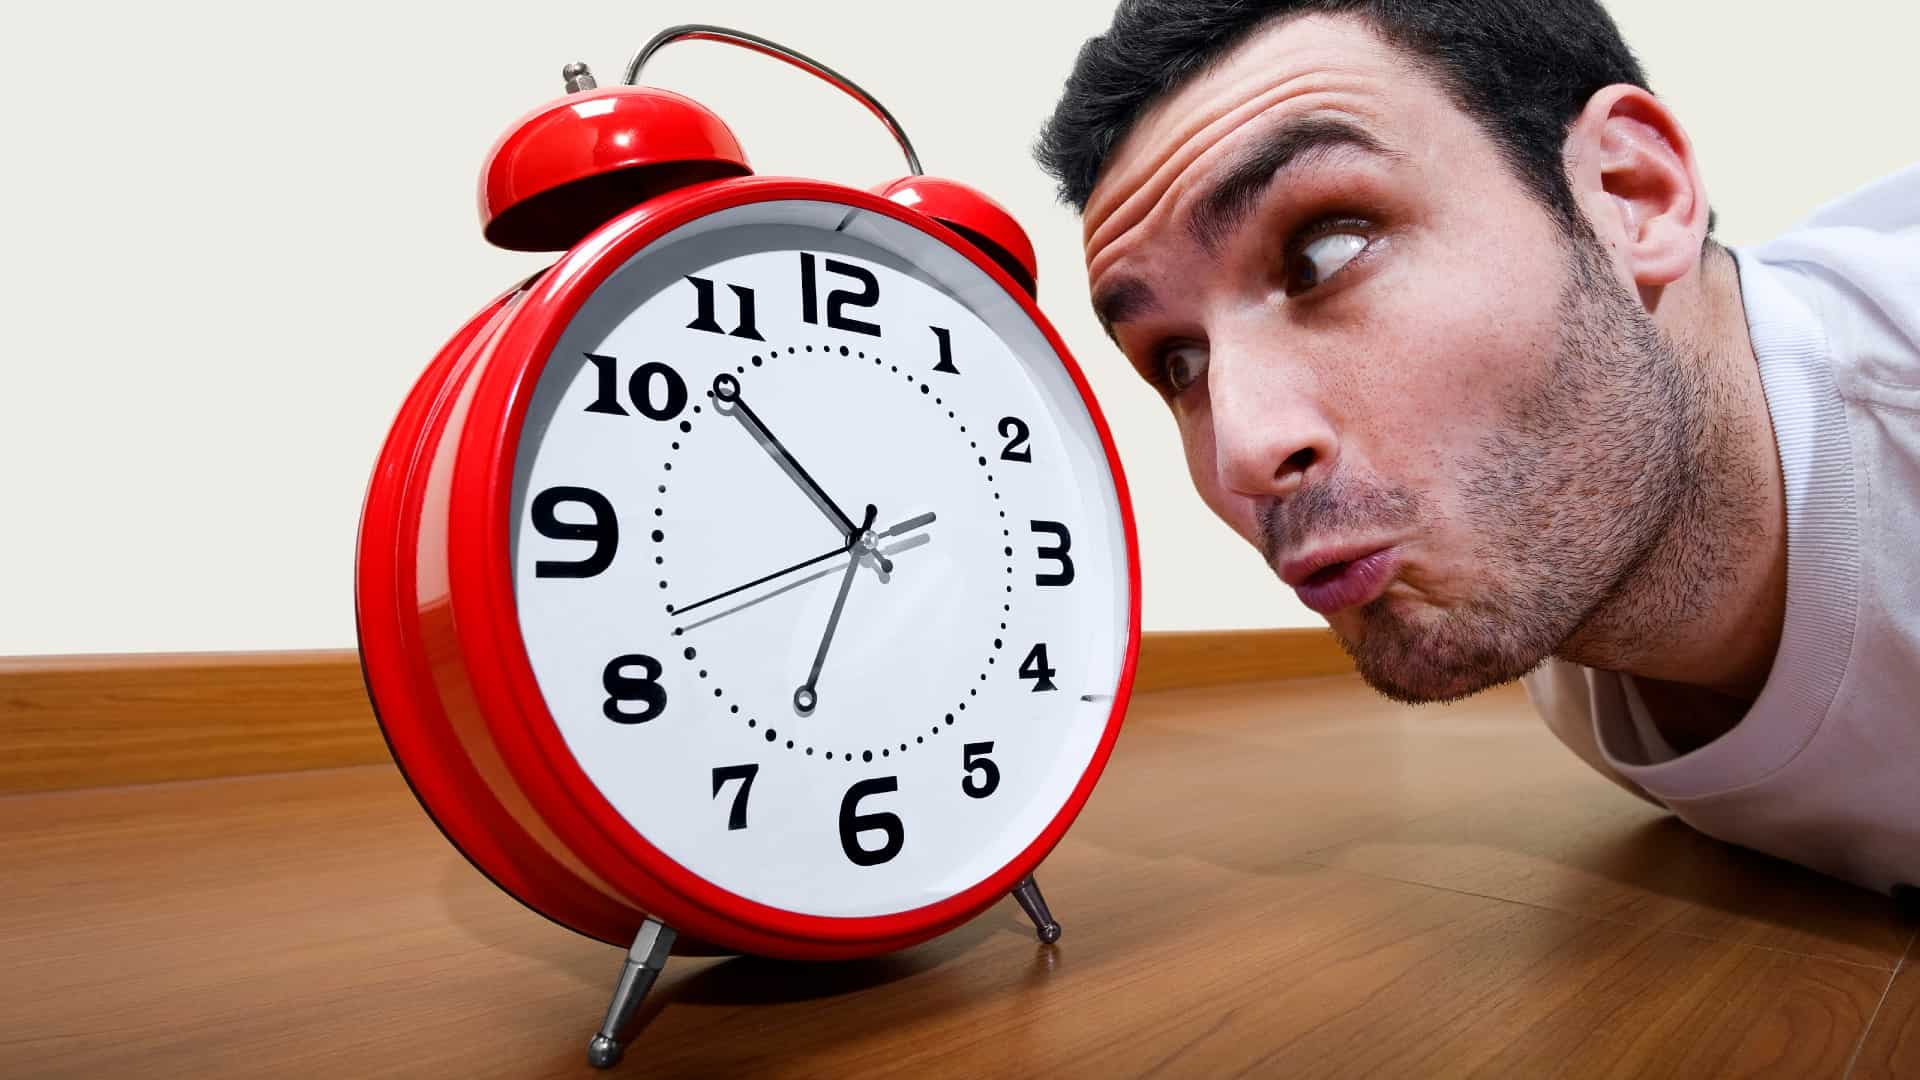 A man closesly watch a clock, indicating a delay or timing issue on an ASX share price movement